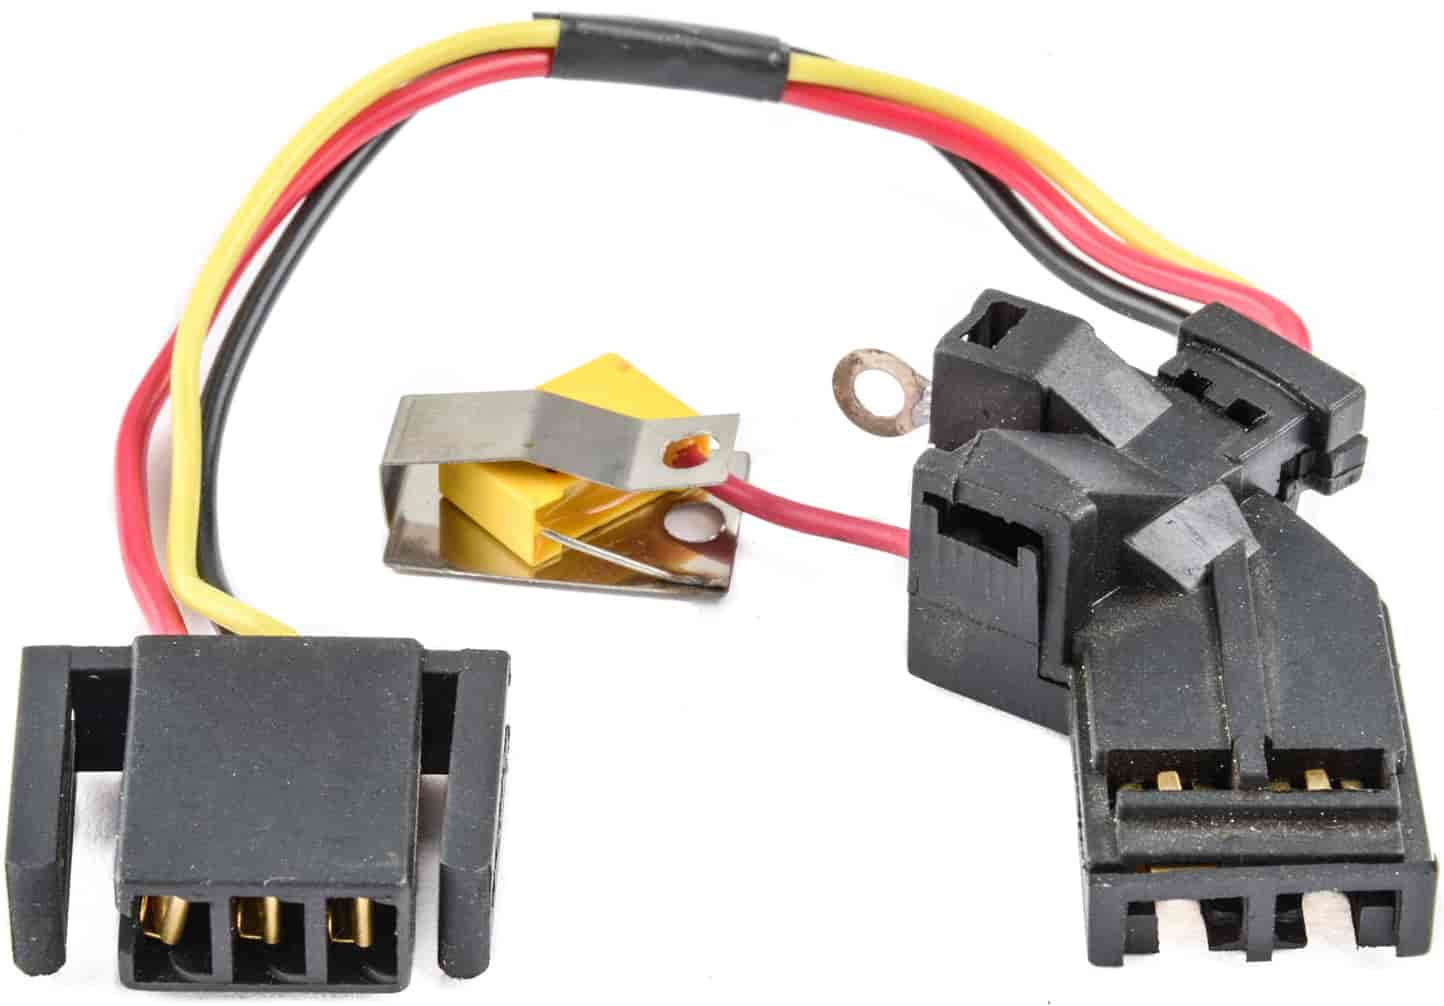 hight resolution of gm hei wiring connector wiring diagram sample gm hei wiring connectors